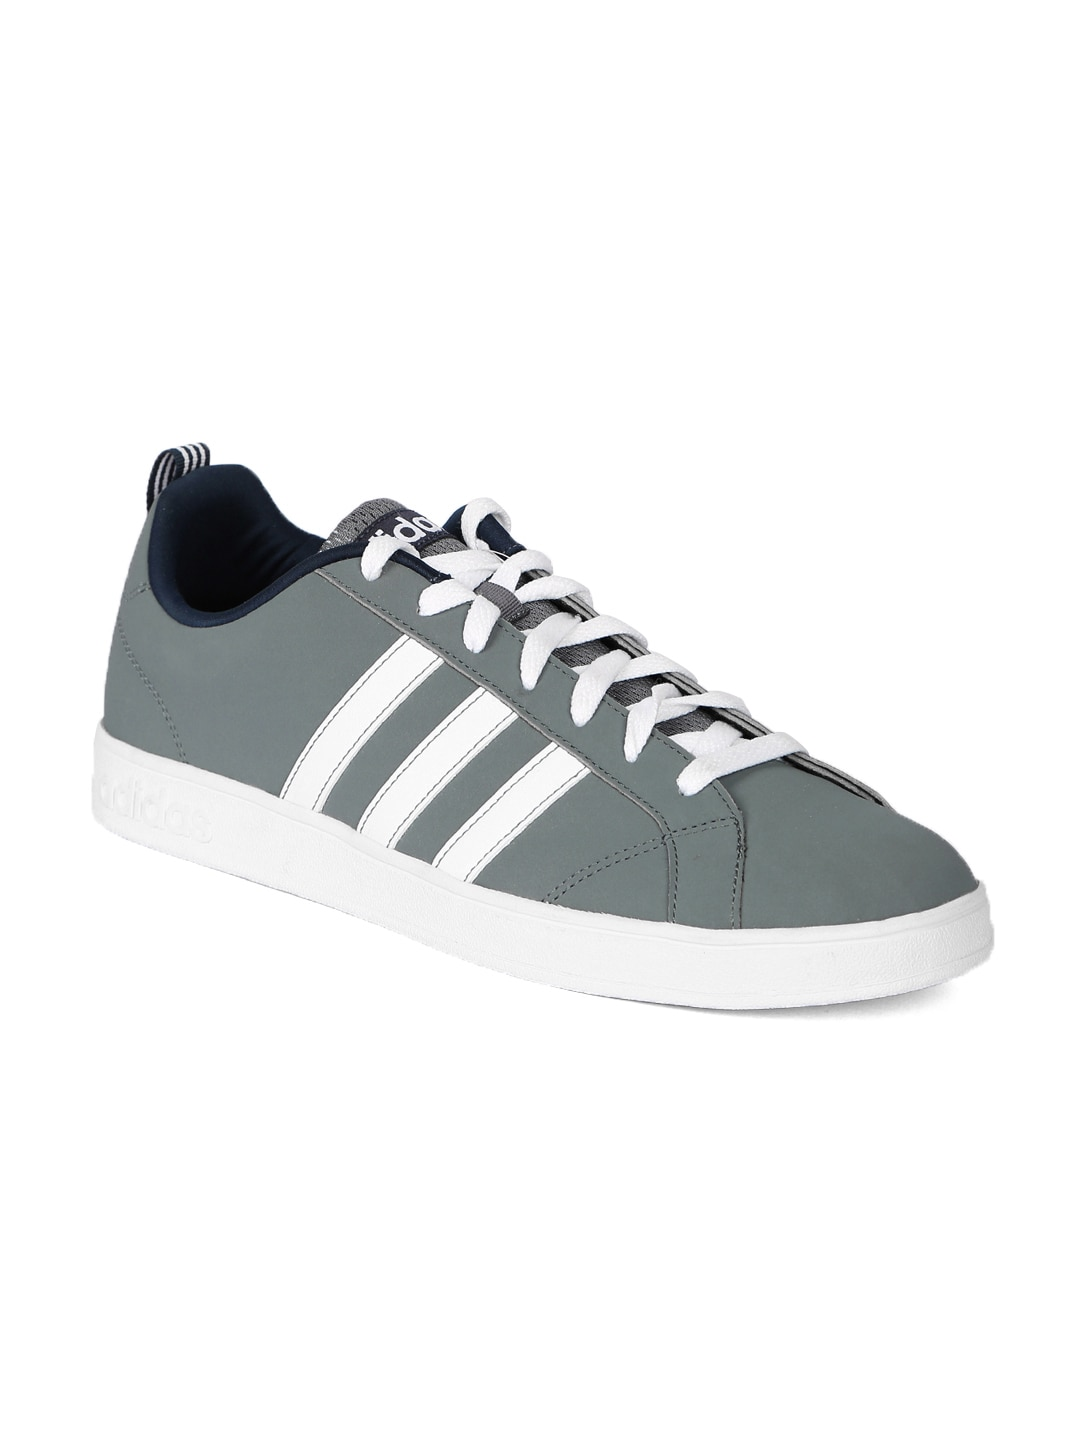 best cheap a1b1b 43b2b Adidas Neo Men Grey Perforated Advantage Vs Sneakers